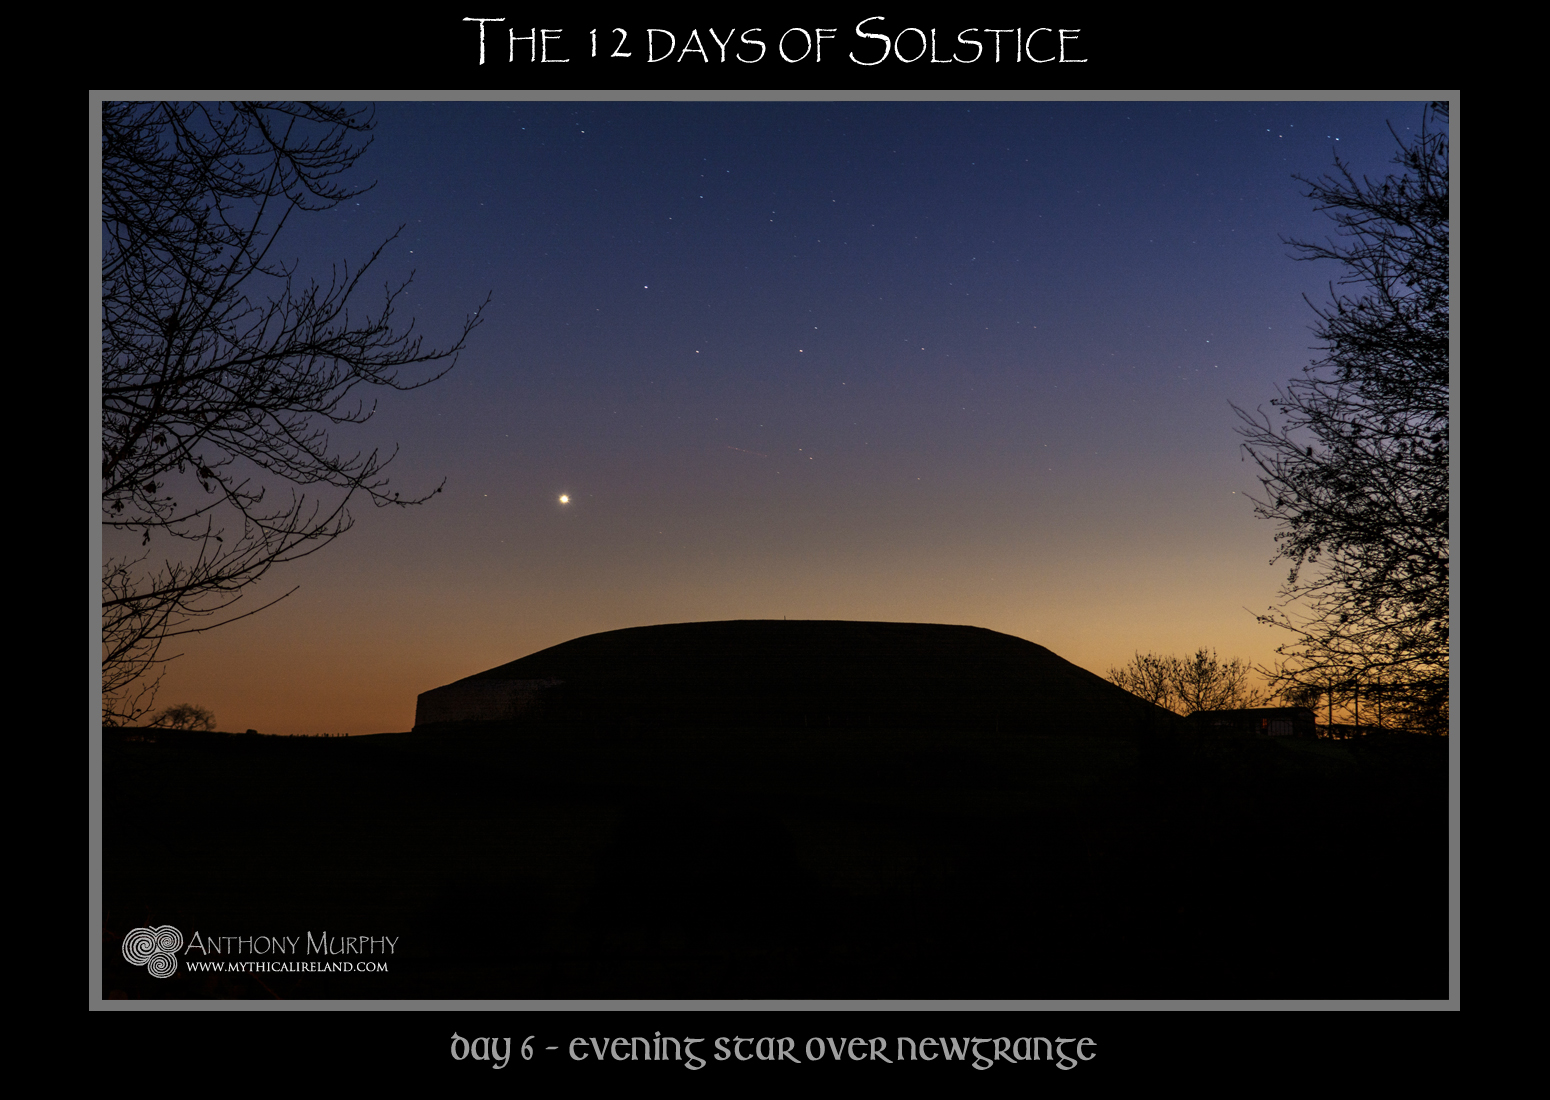 mythical ireland blog the 12 days of solstice day 6 venus